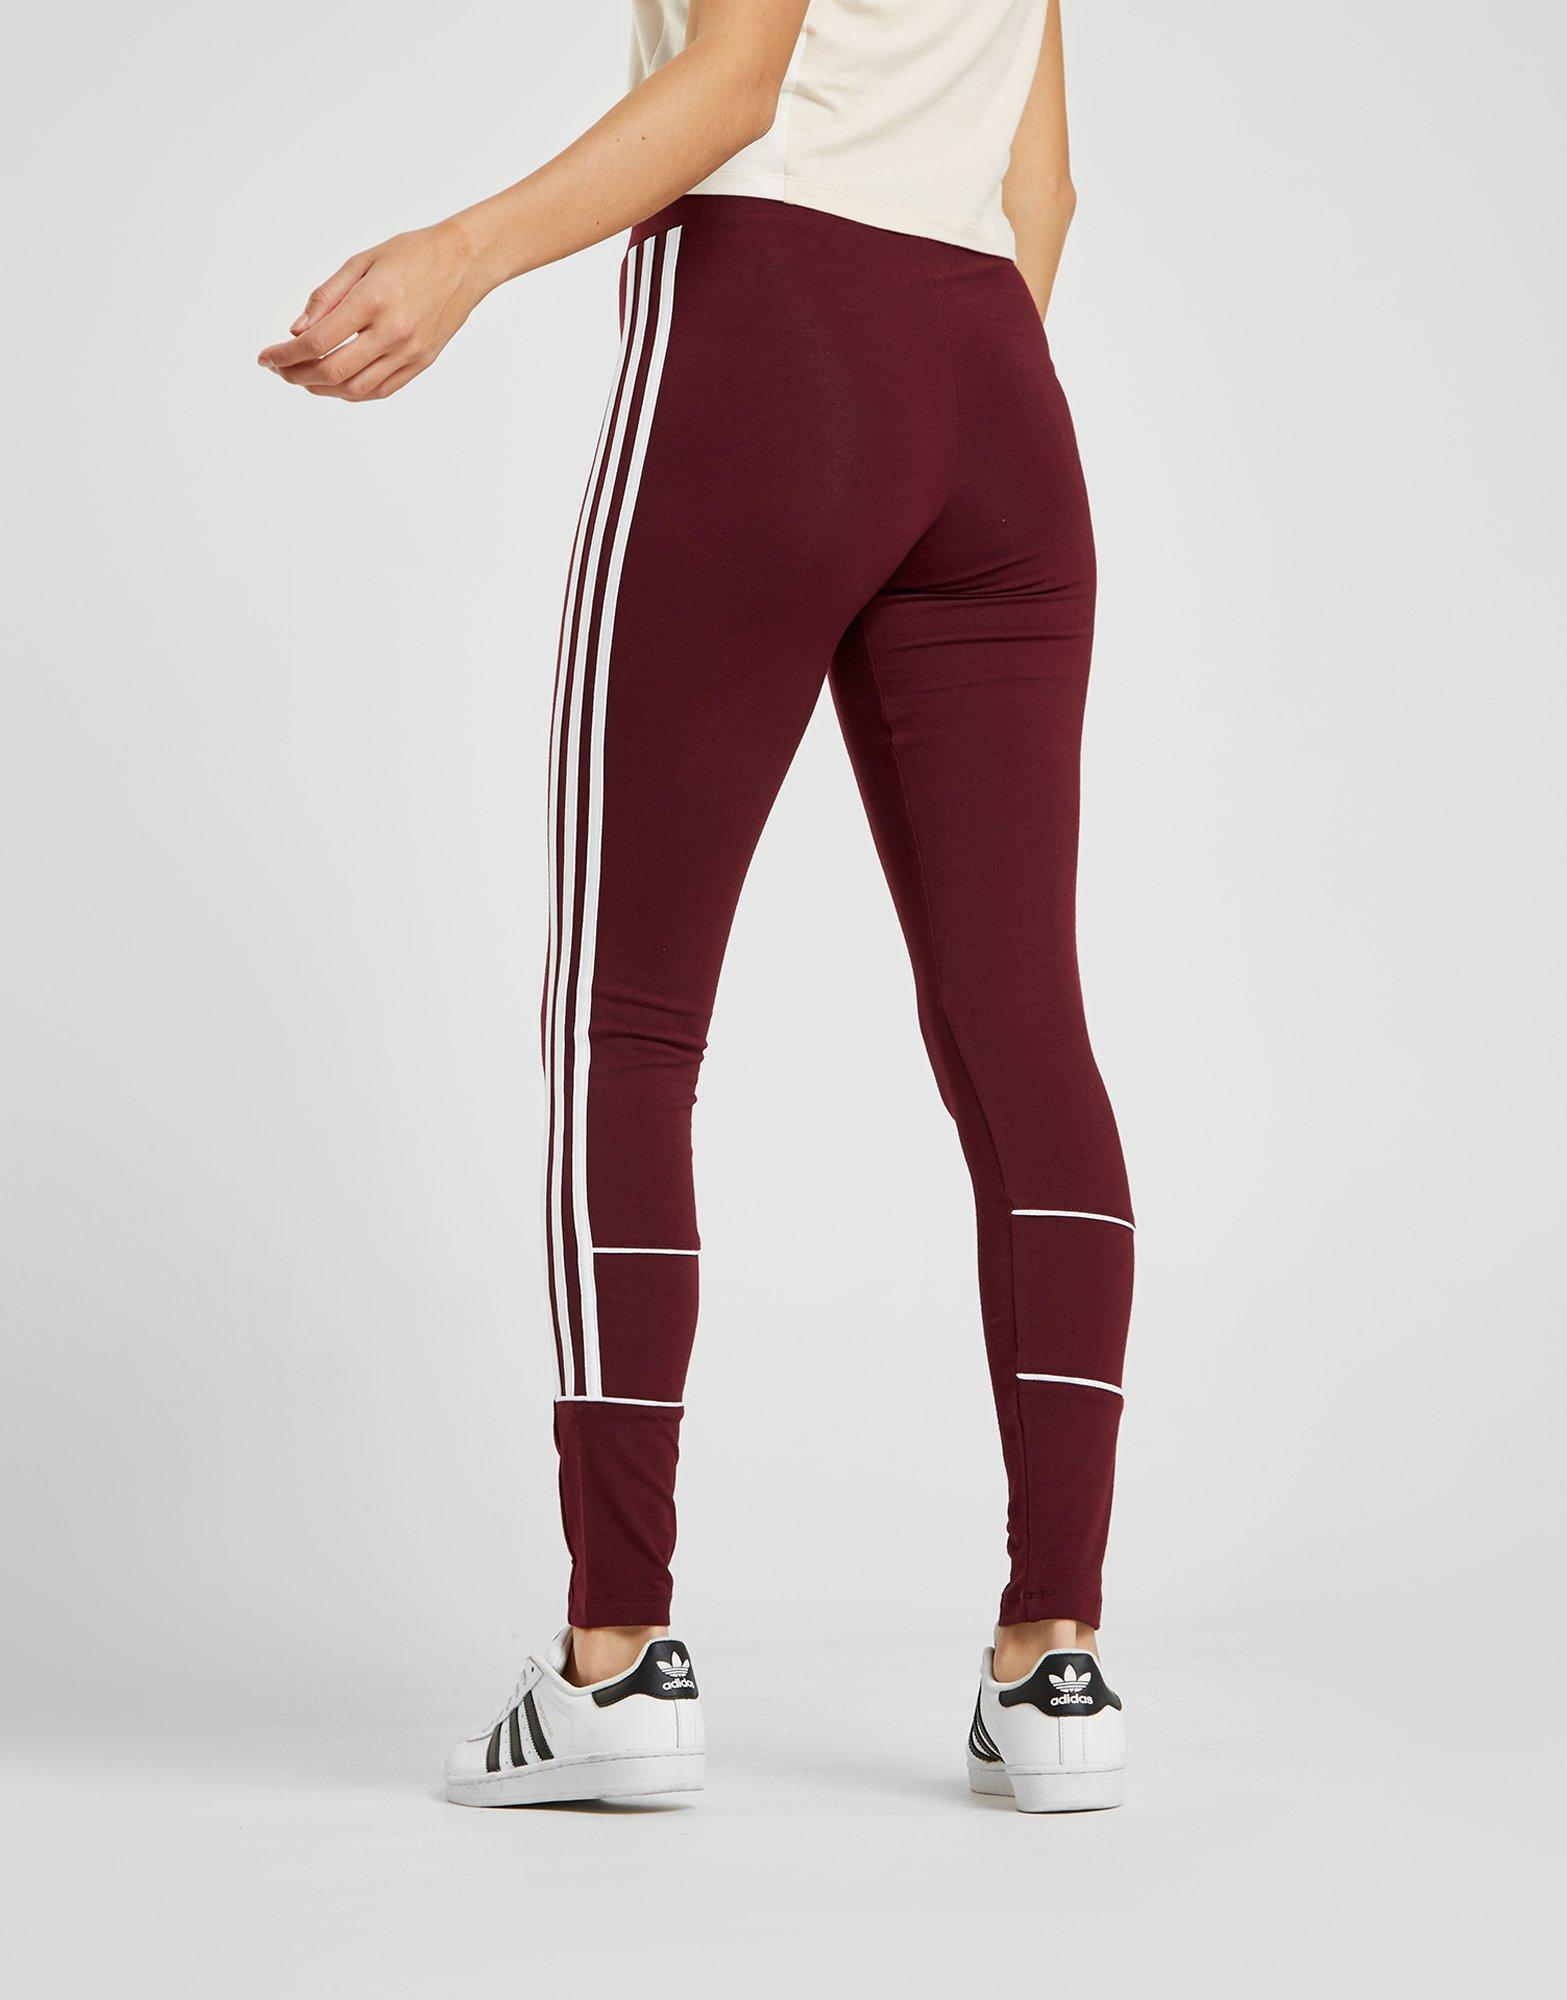 bce6947dc Lyst - adidas Originals 3-stripes Piping Leggings in Red